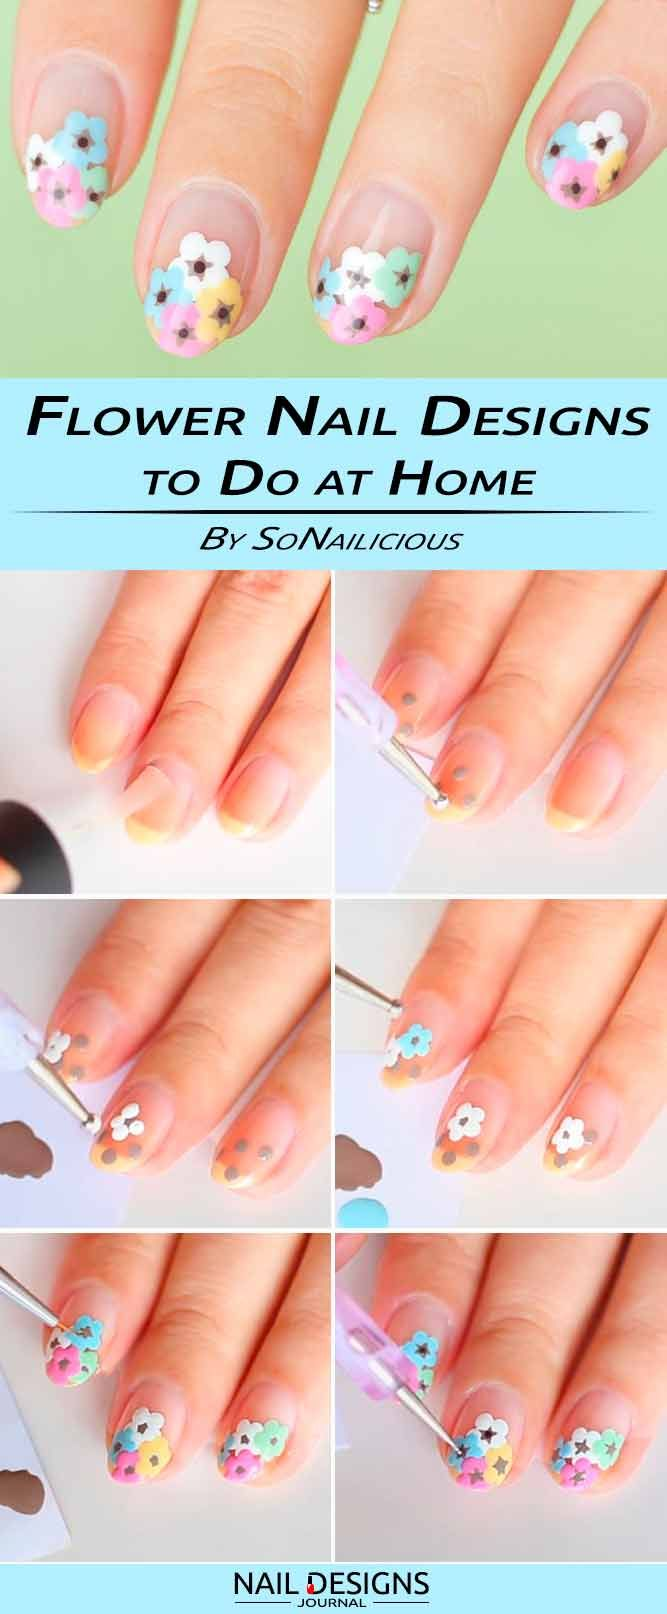 25 Super Easy DIY Nails Designs Every Girl Should Know